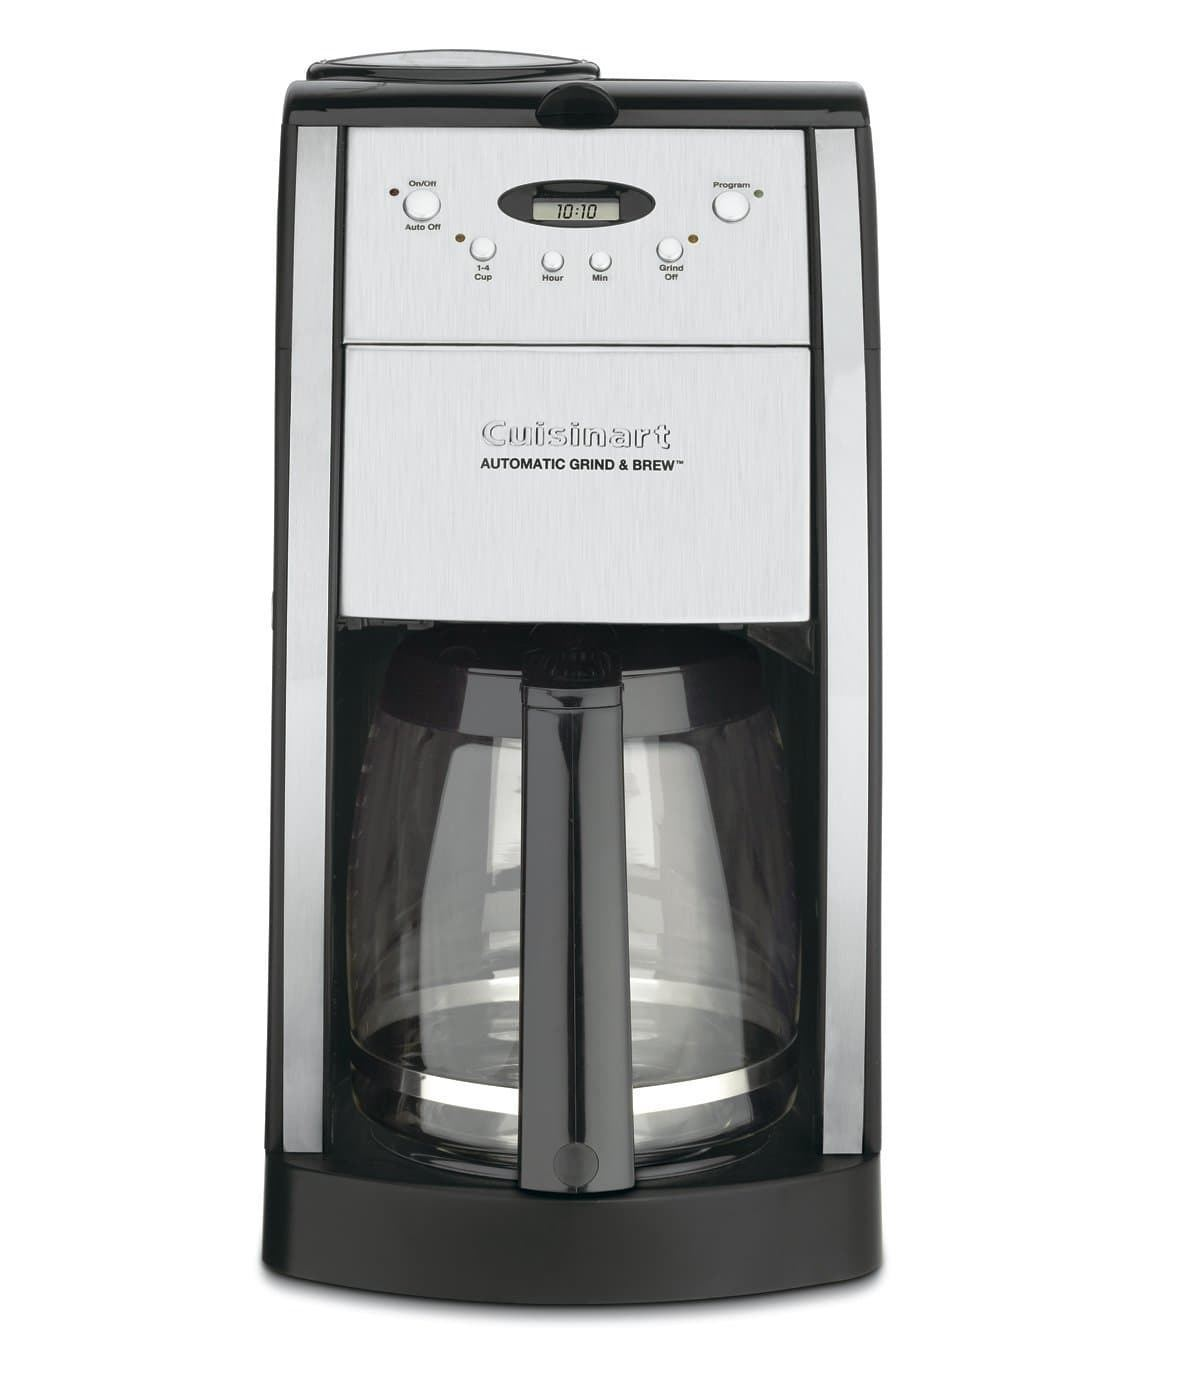 Cuisinart Dgb 550bk Grind And Brew Automatic Coffee Maker Reviews Header